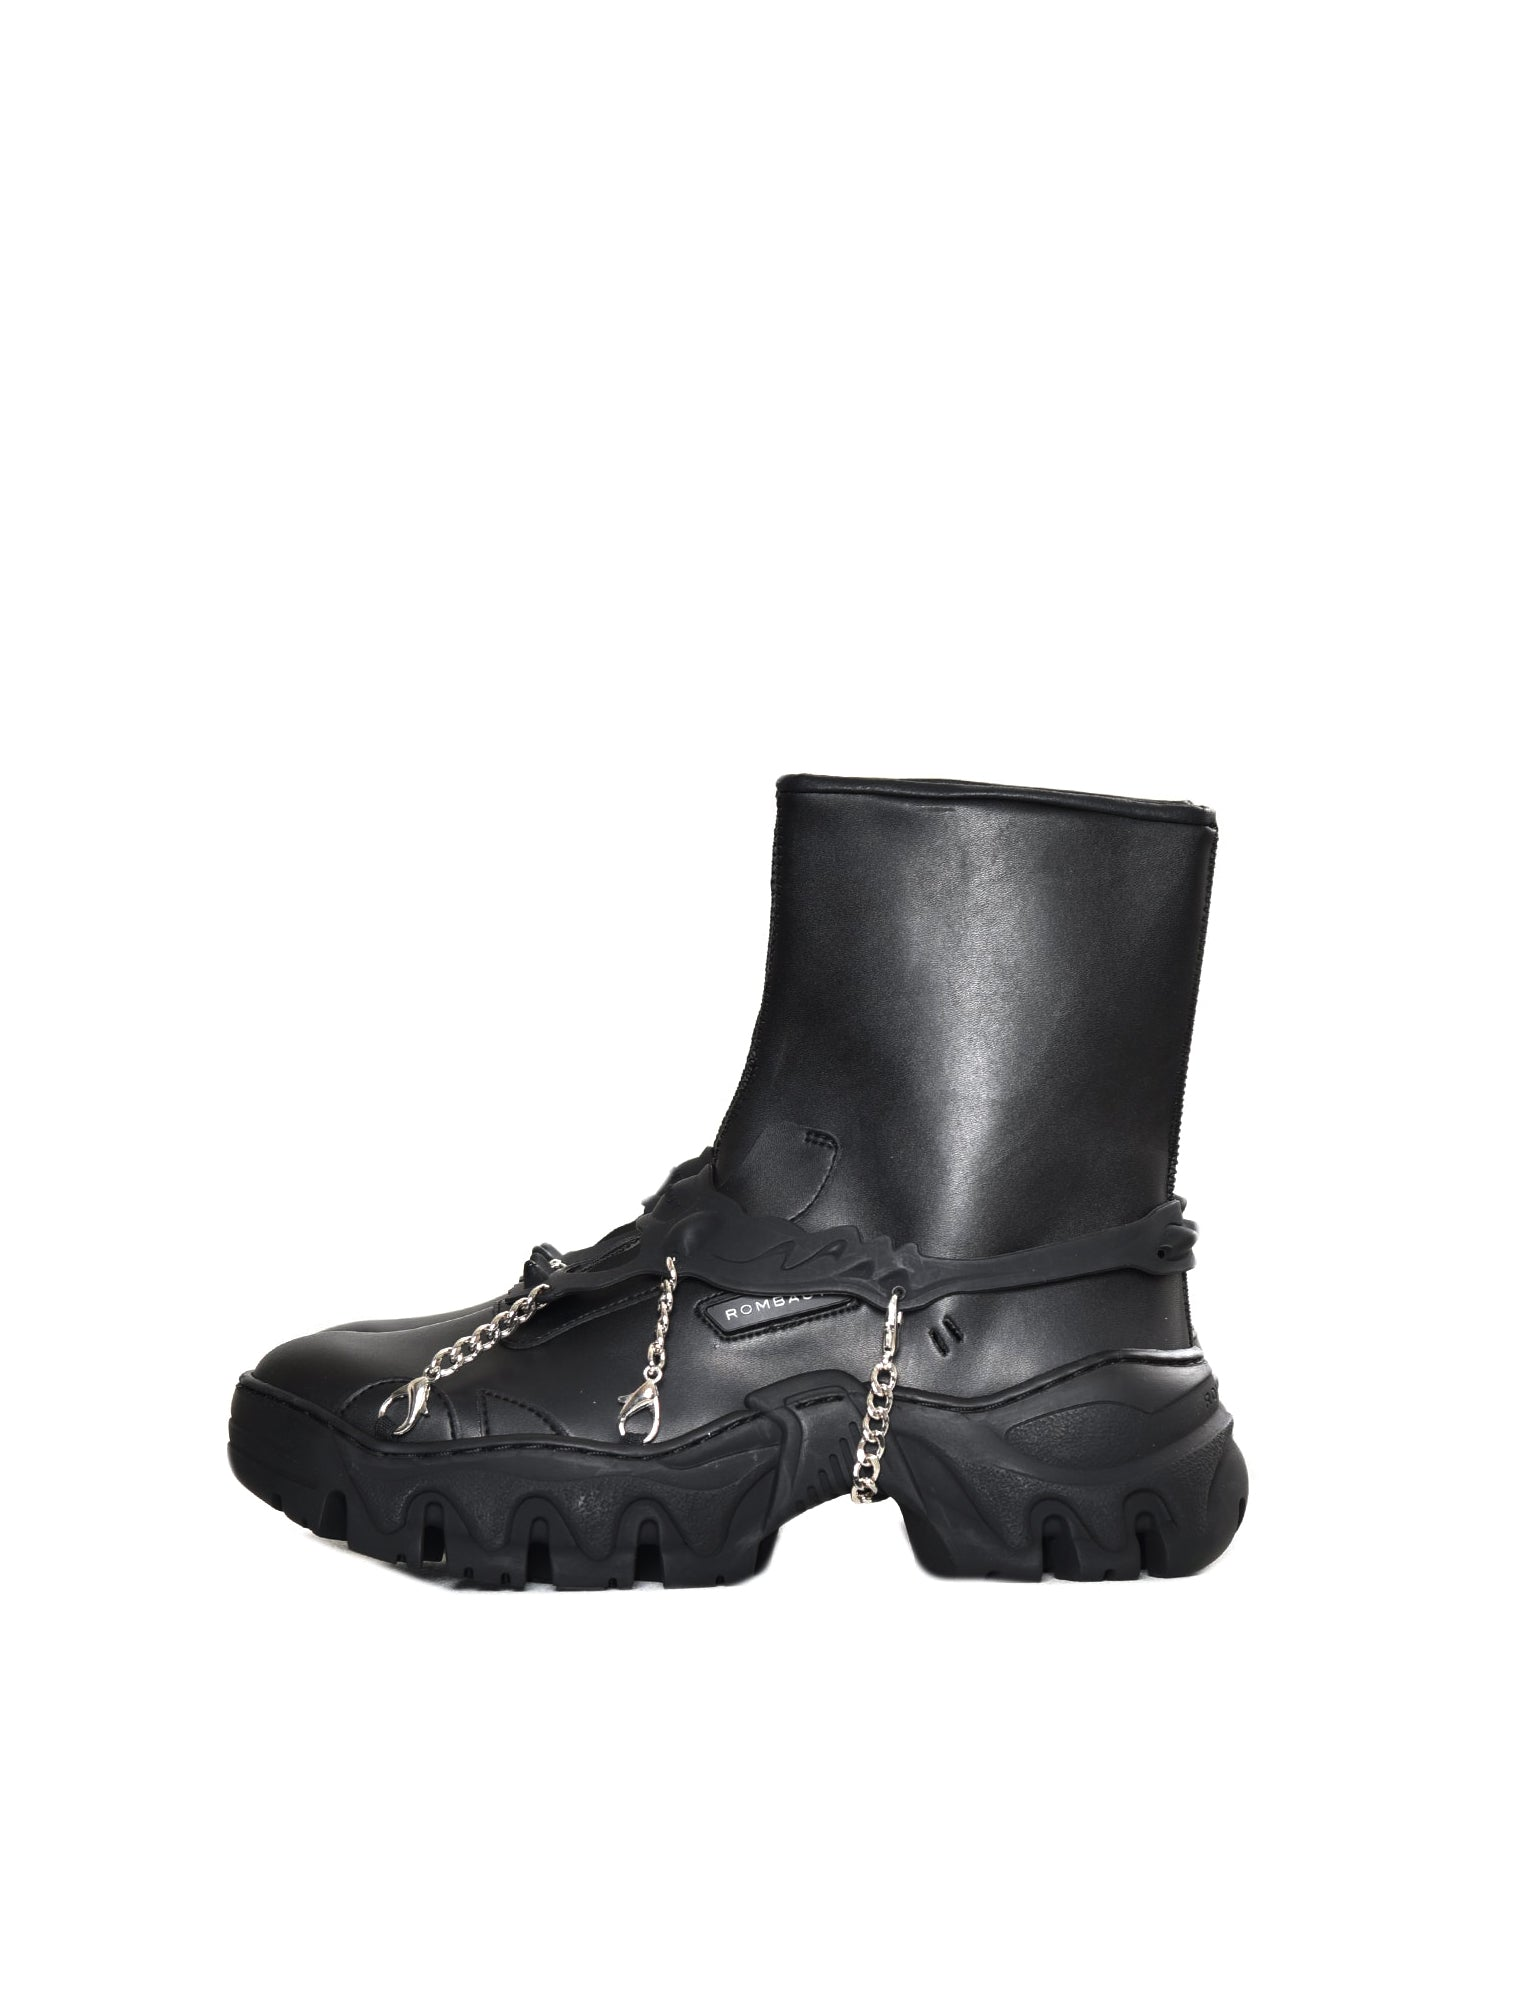 Boccaccio II Lite Harness Future Leather Boot